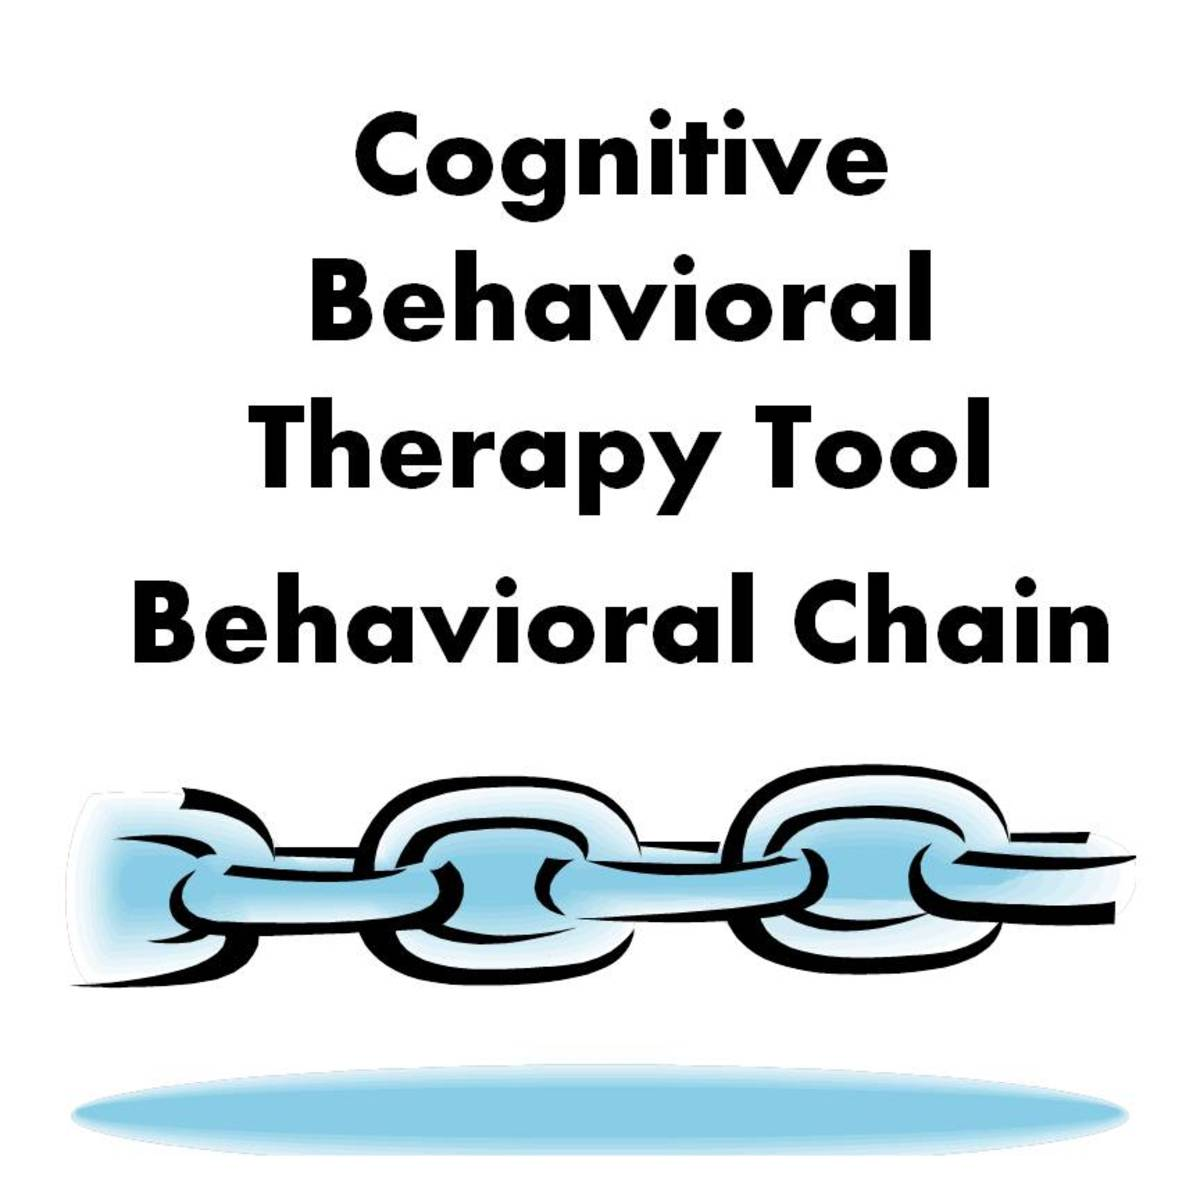 Cognitive Behavioral Therapy Tool Behavioral Chain